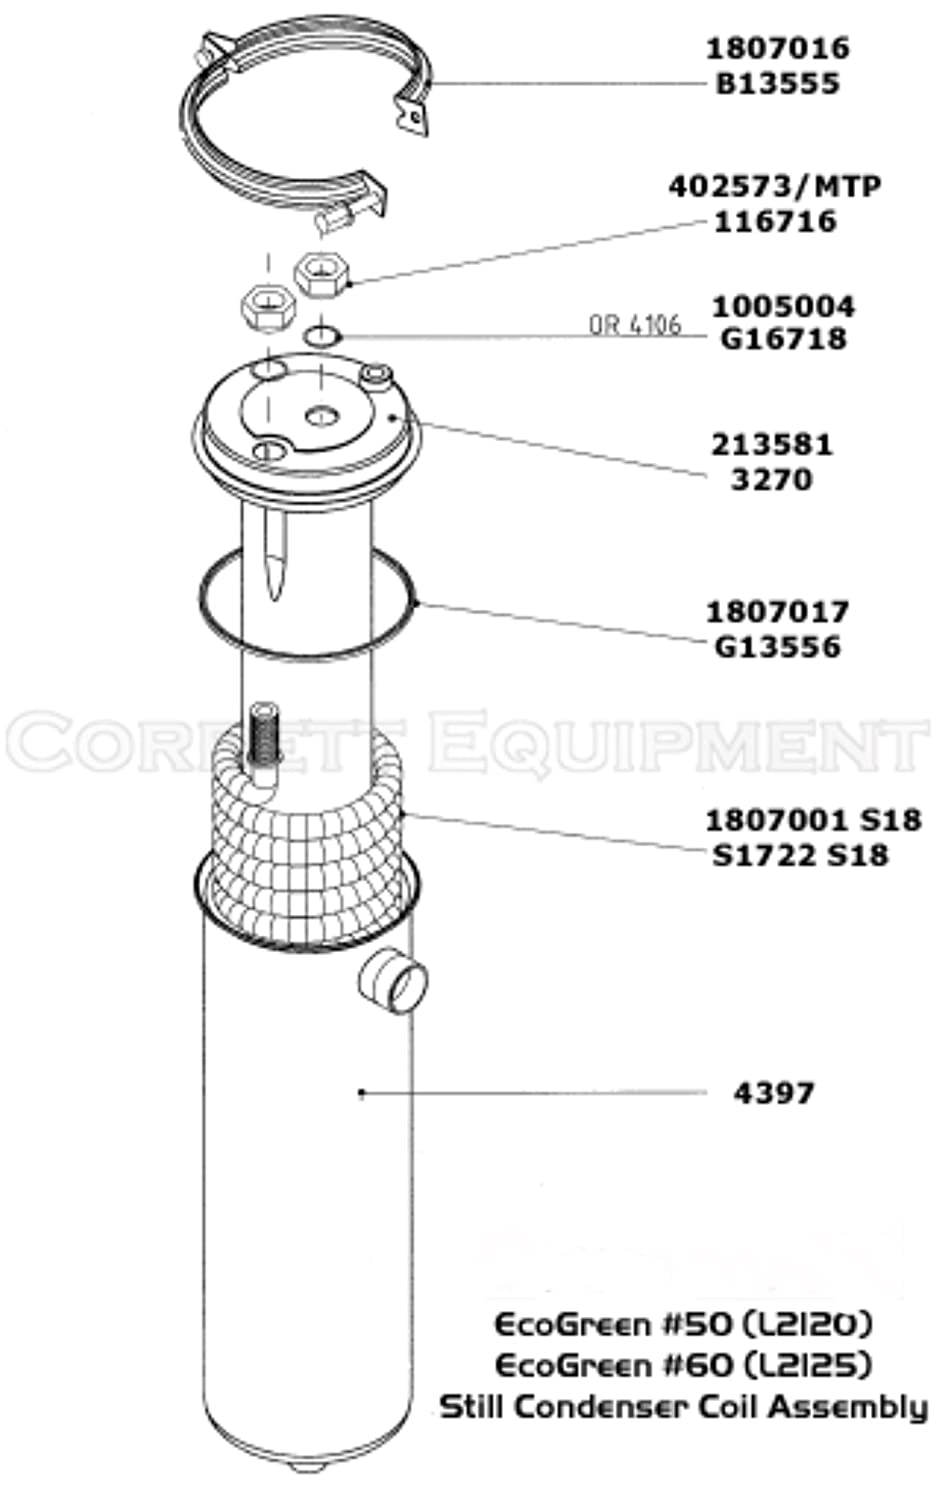 Condensor Gasket for Union, Realstar dry cleaning machines #1807017 #G13556